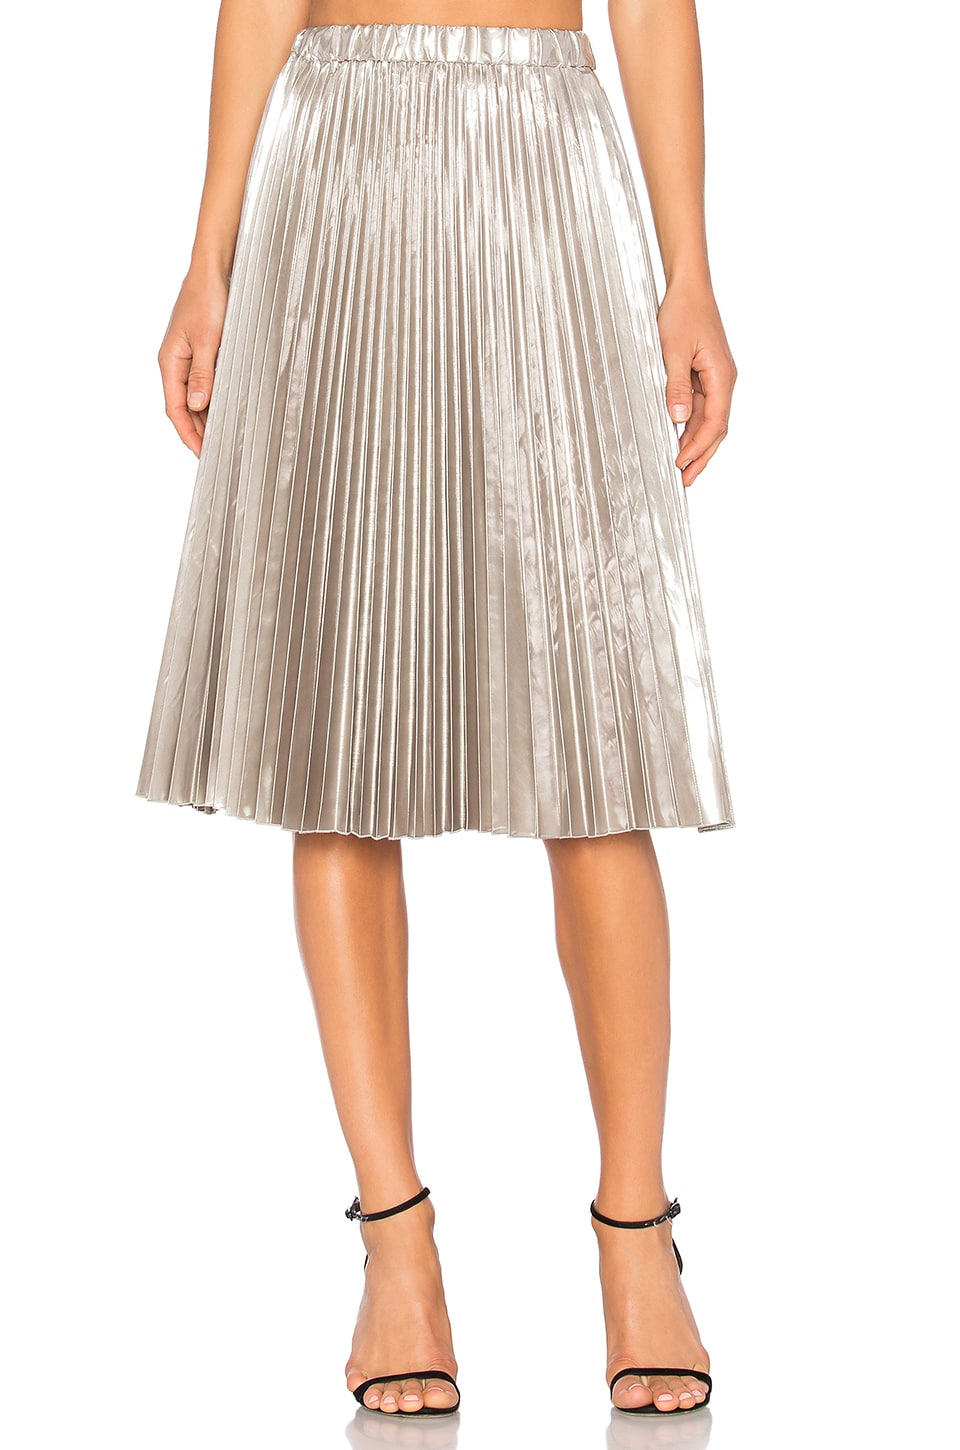 No. 21 Pleated Midi Skirt in Silver